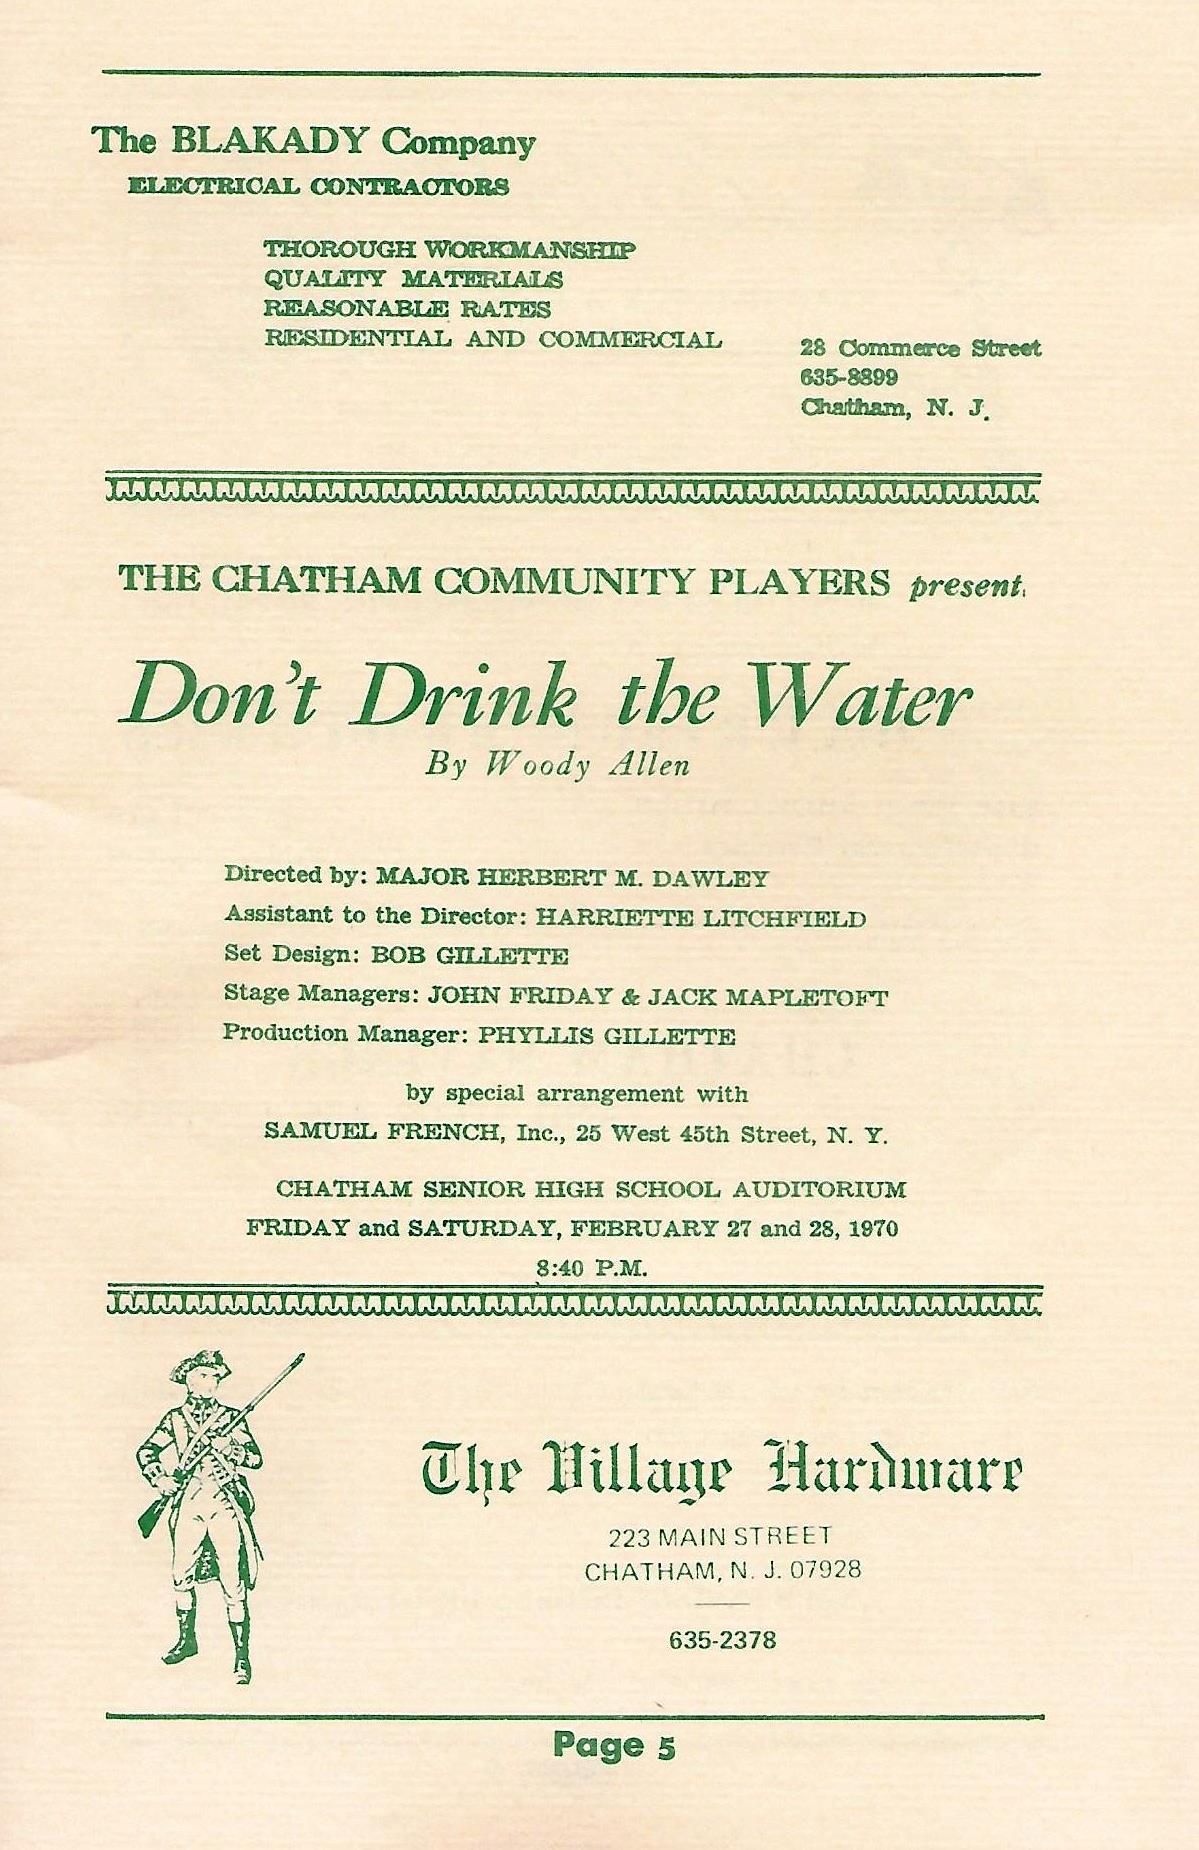 Don't Drink the Water (1970)